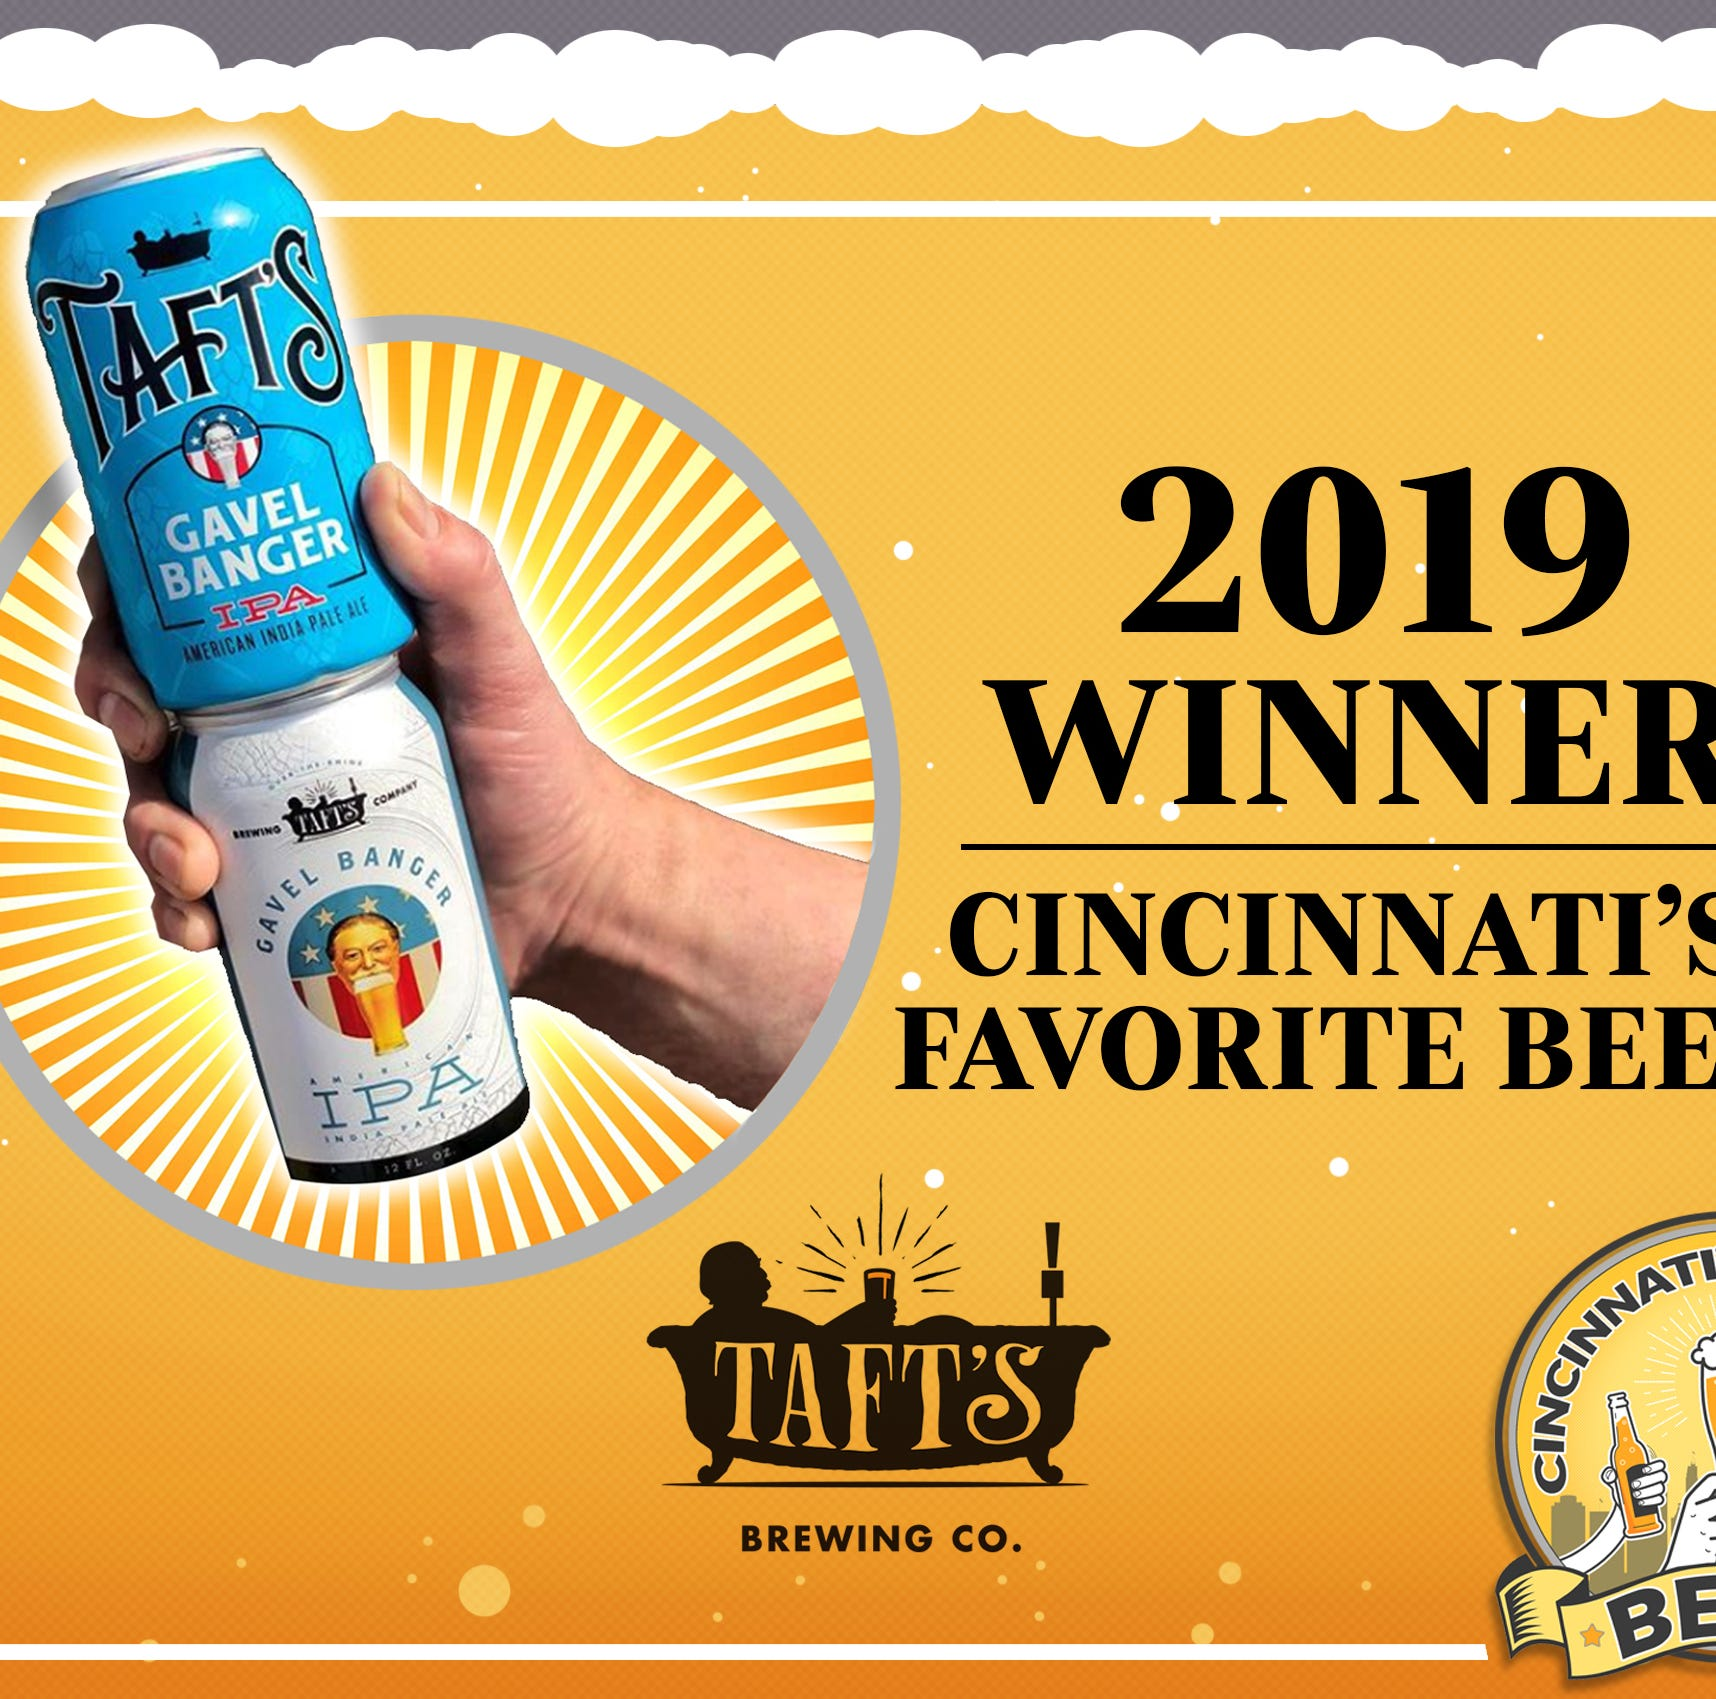 IPA from Taft's wins Cincinnati's Favorite Beer 2019